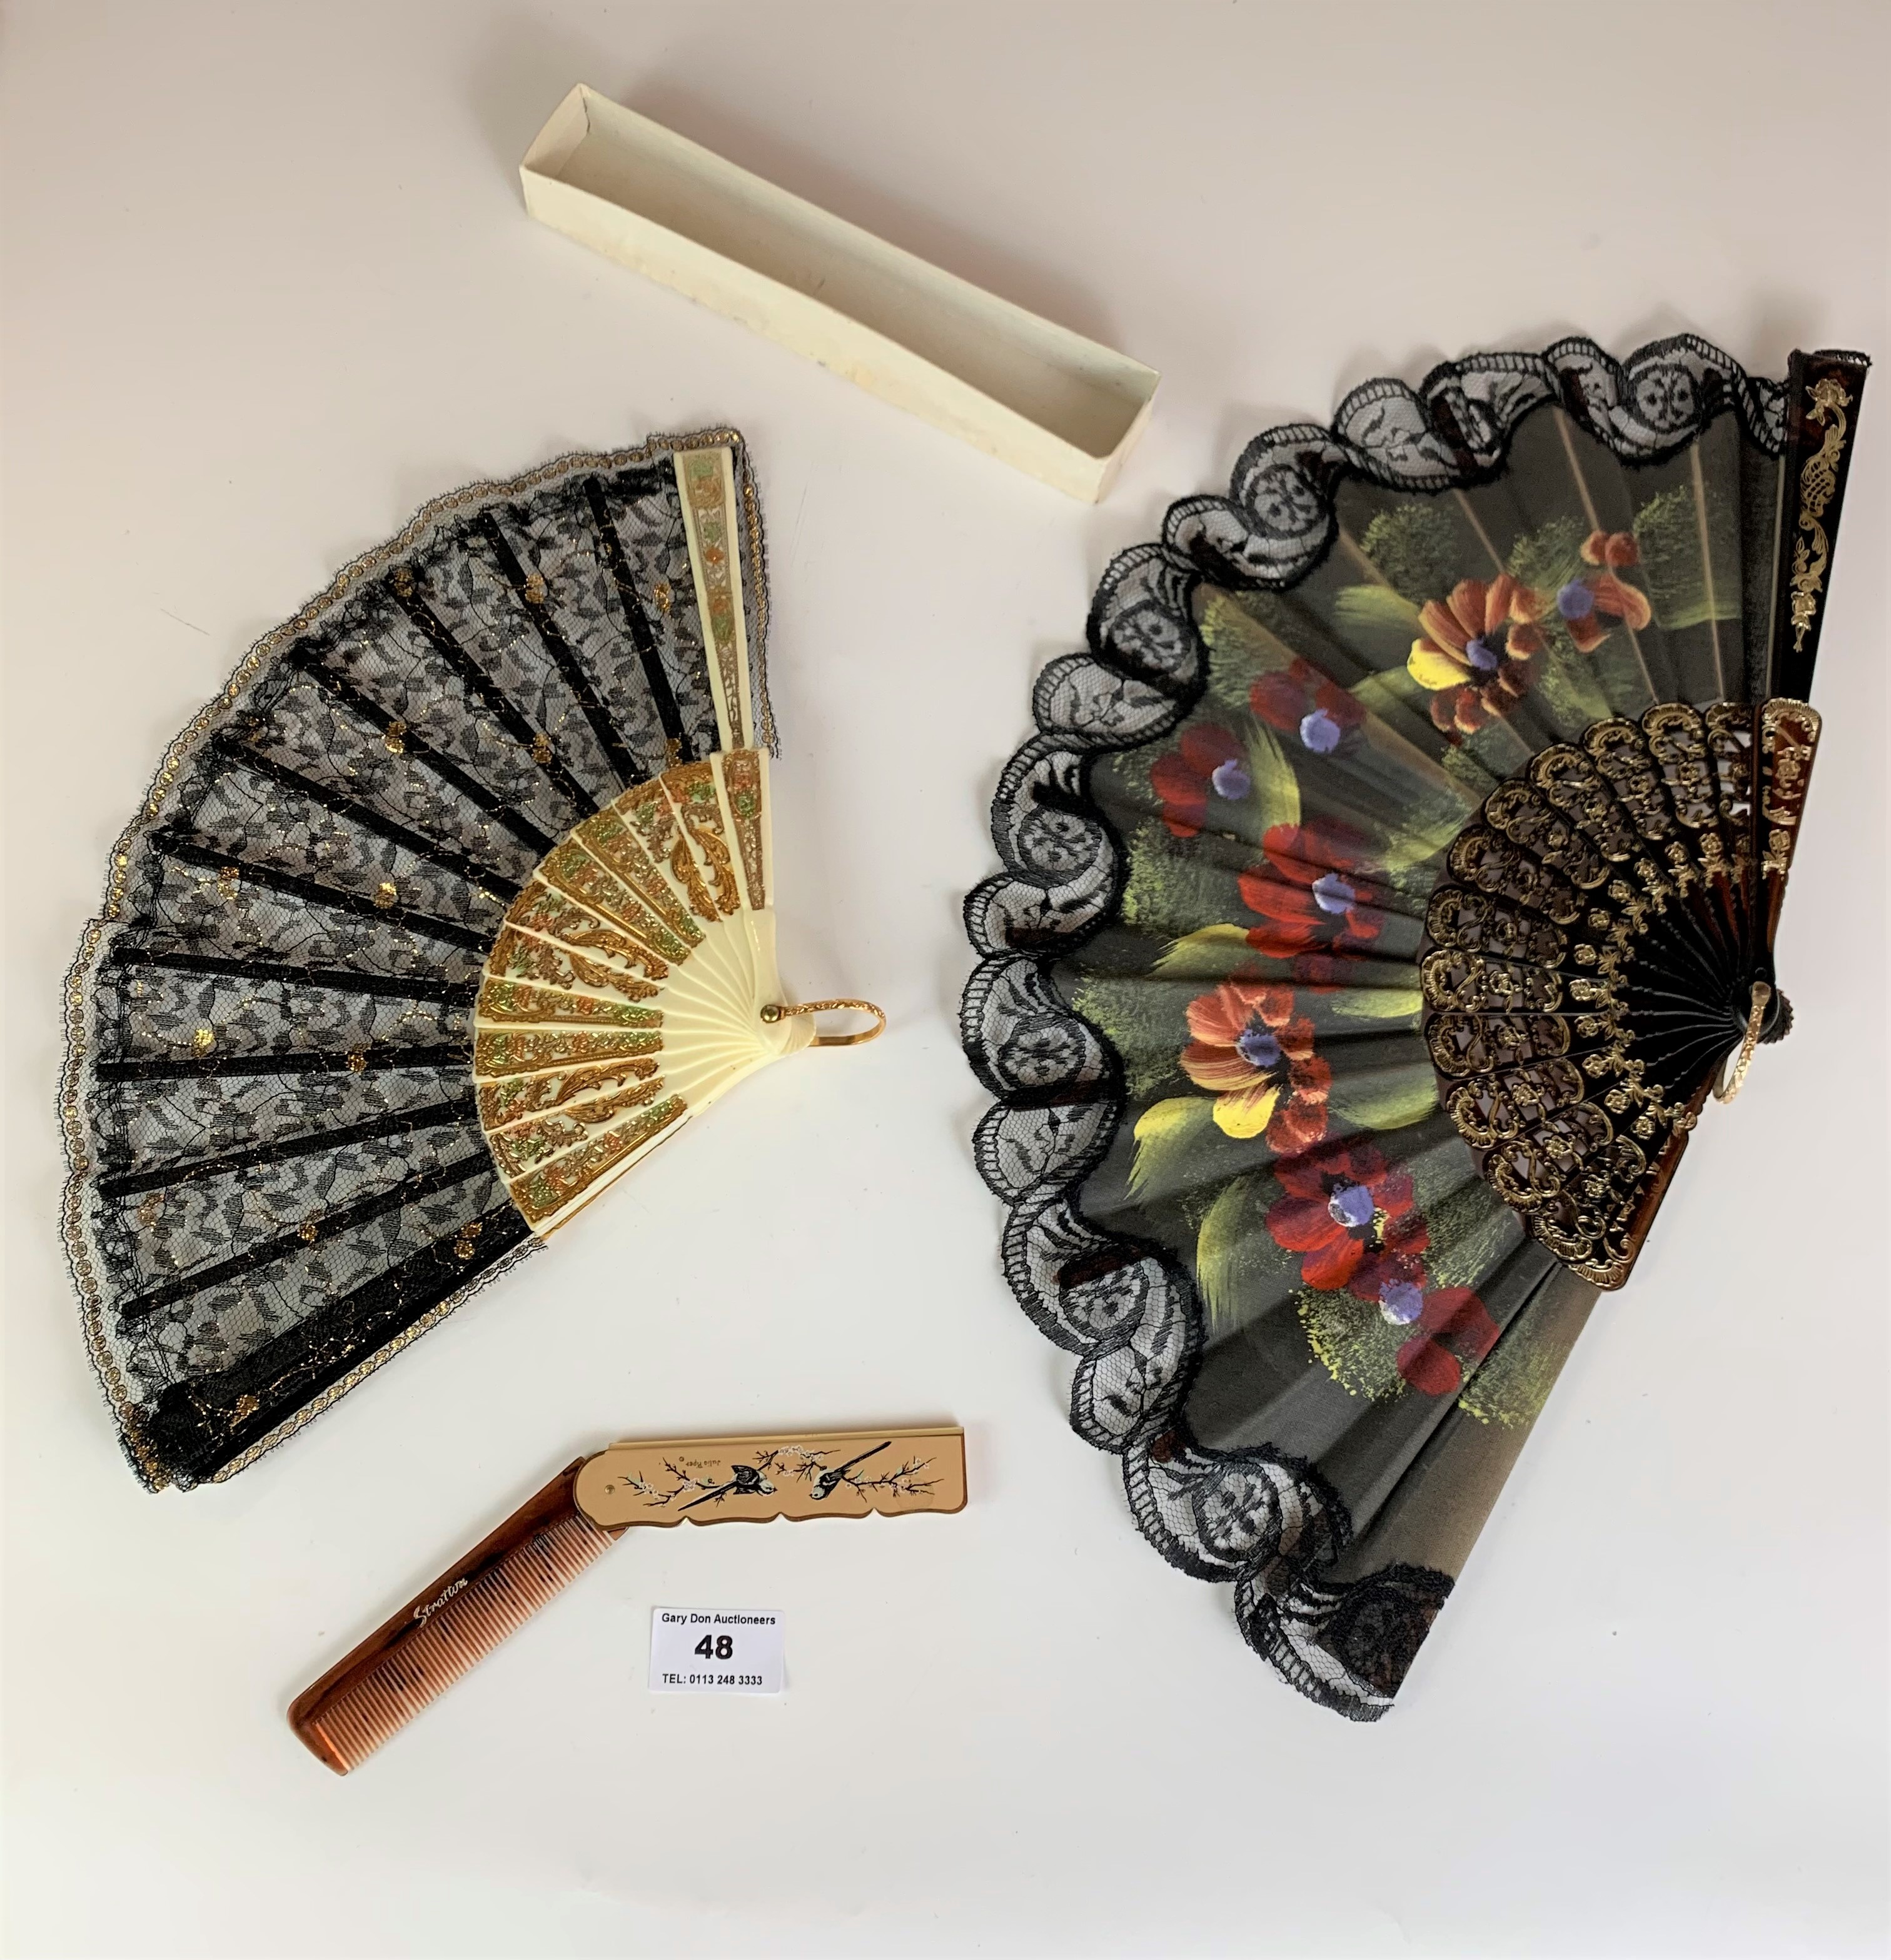 2 fans and a comb